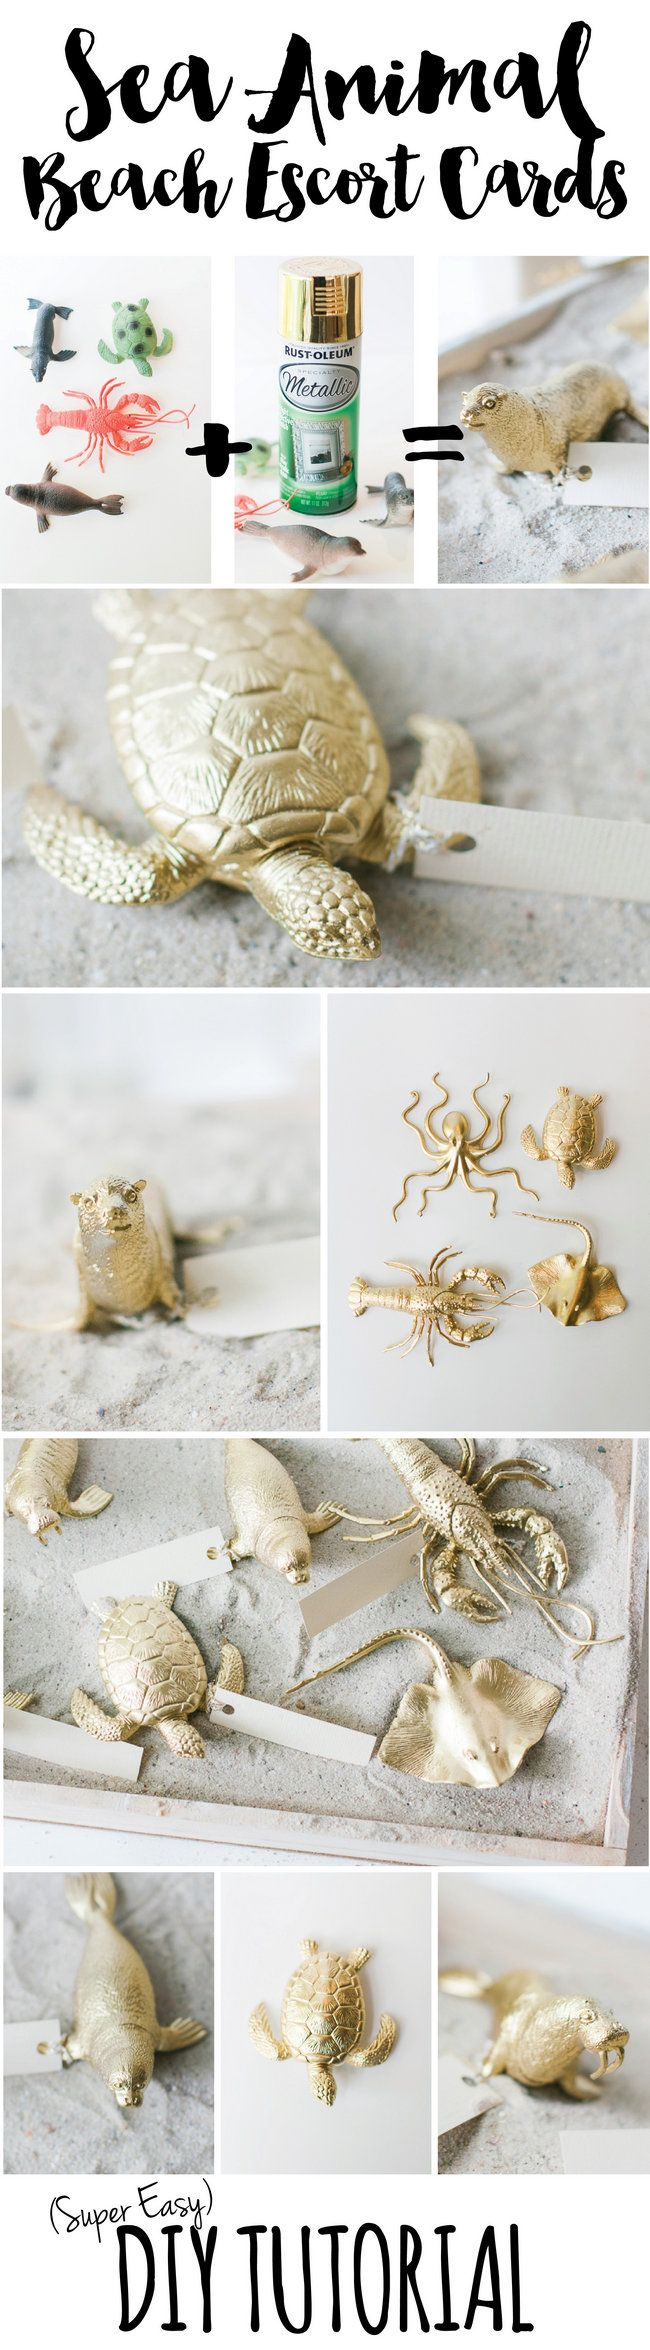 (You could do this with almost anything!) Learn how to make these adorable beach Wedding Escort Cards from plastic sea animals in minutes using gold spray paint and bakers twine! ♥ click http://www.confettidaydreams.com/diy-beach-wedding-escort-cards/ for the DIY tutorial and supply list.